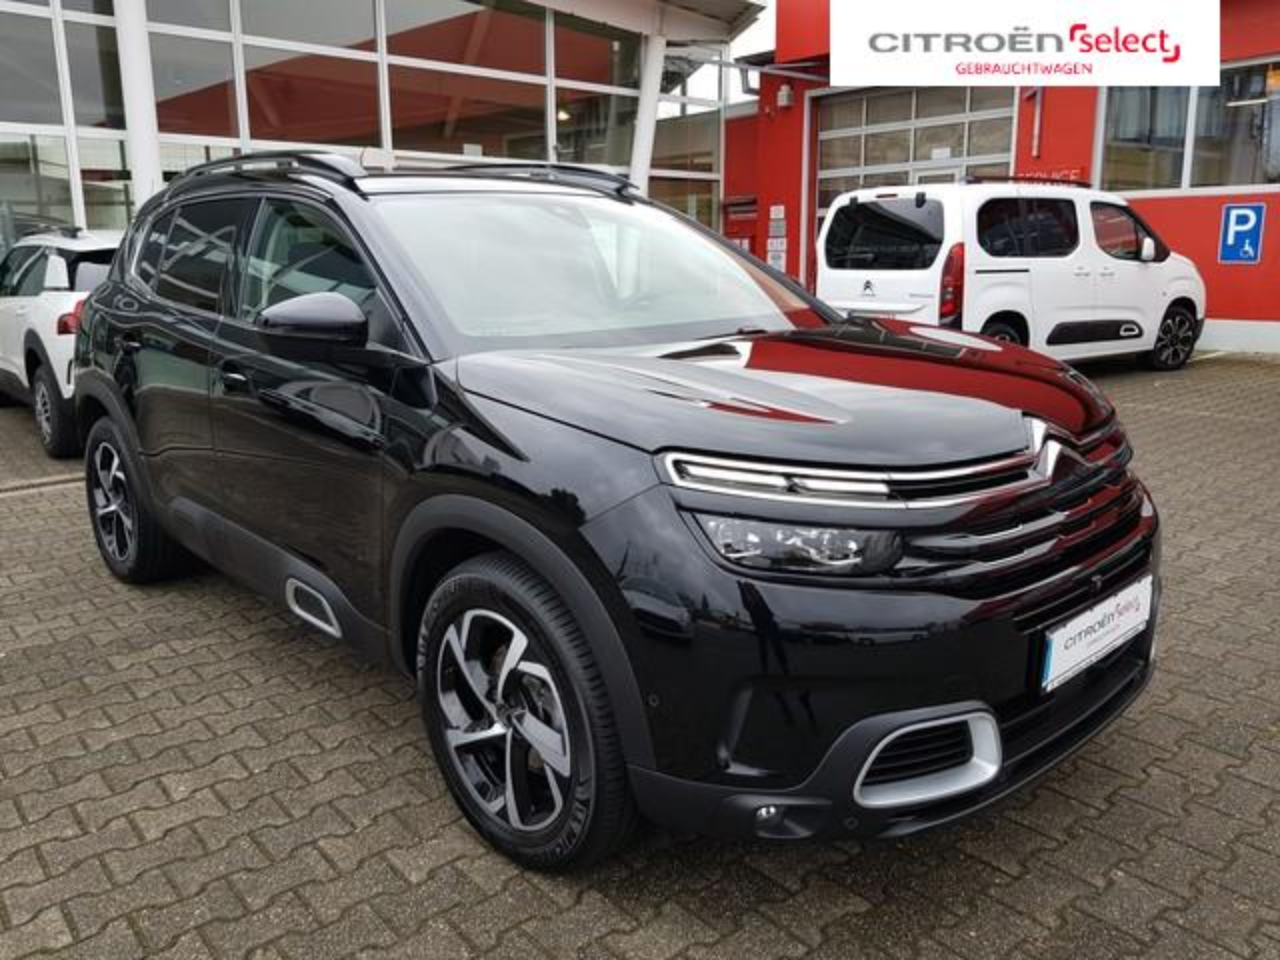 Citroën C5 AIRCROSS BlueHDI 180 S&S EAT8 FEEL *Nav*SD* Kamera*